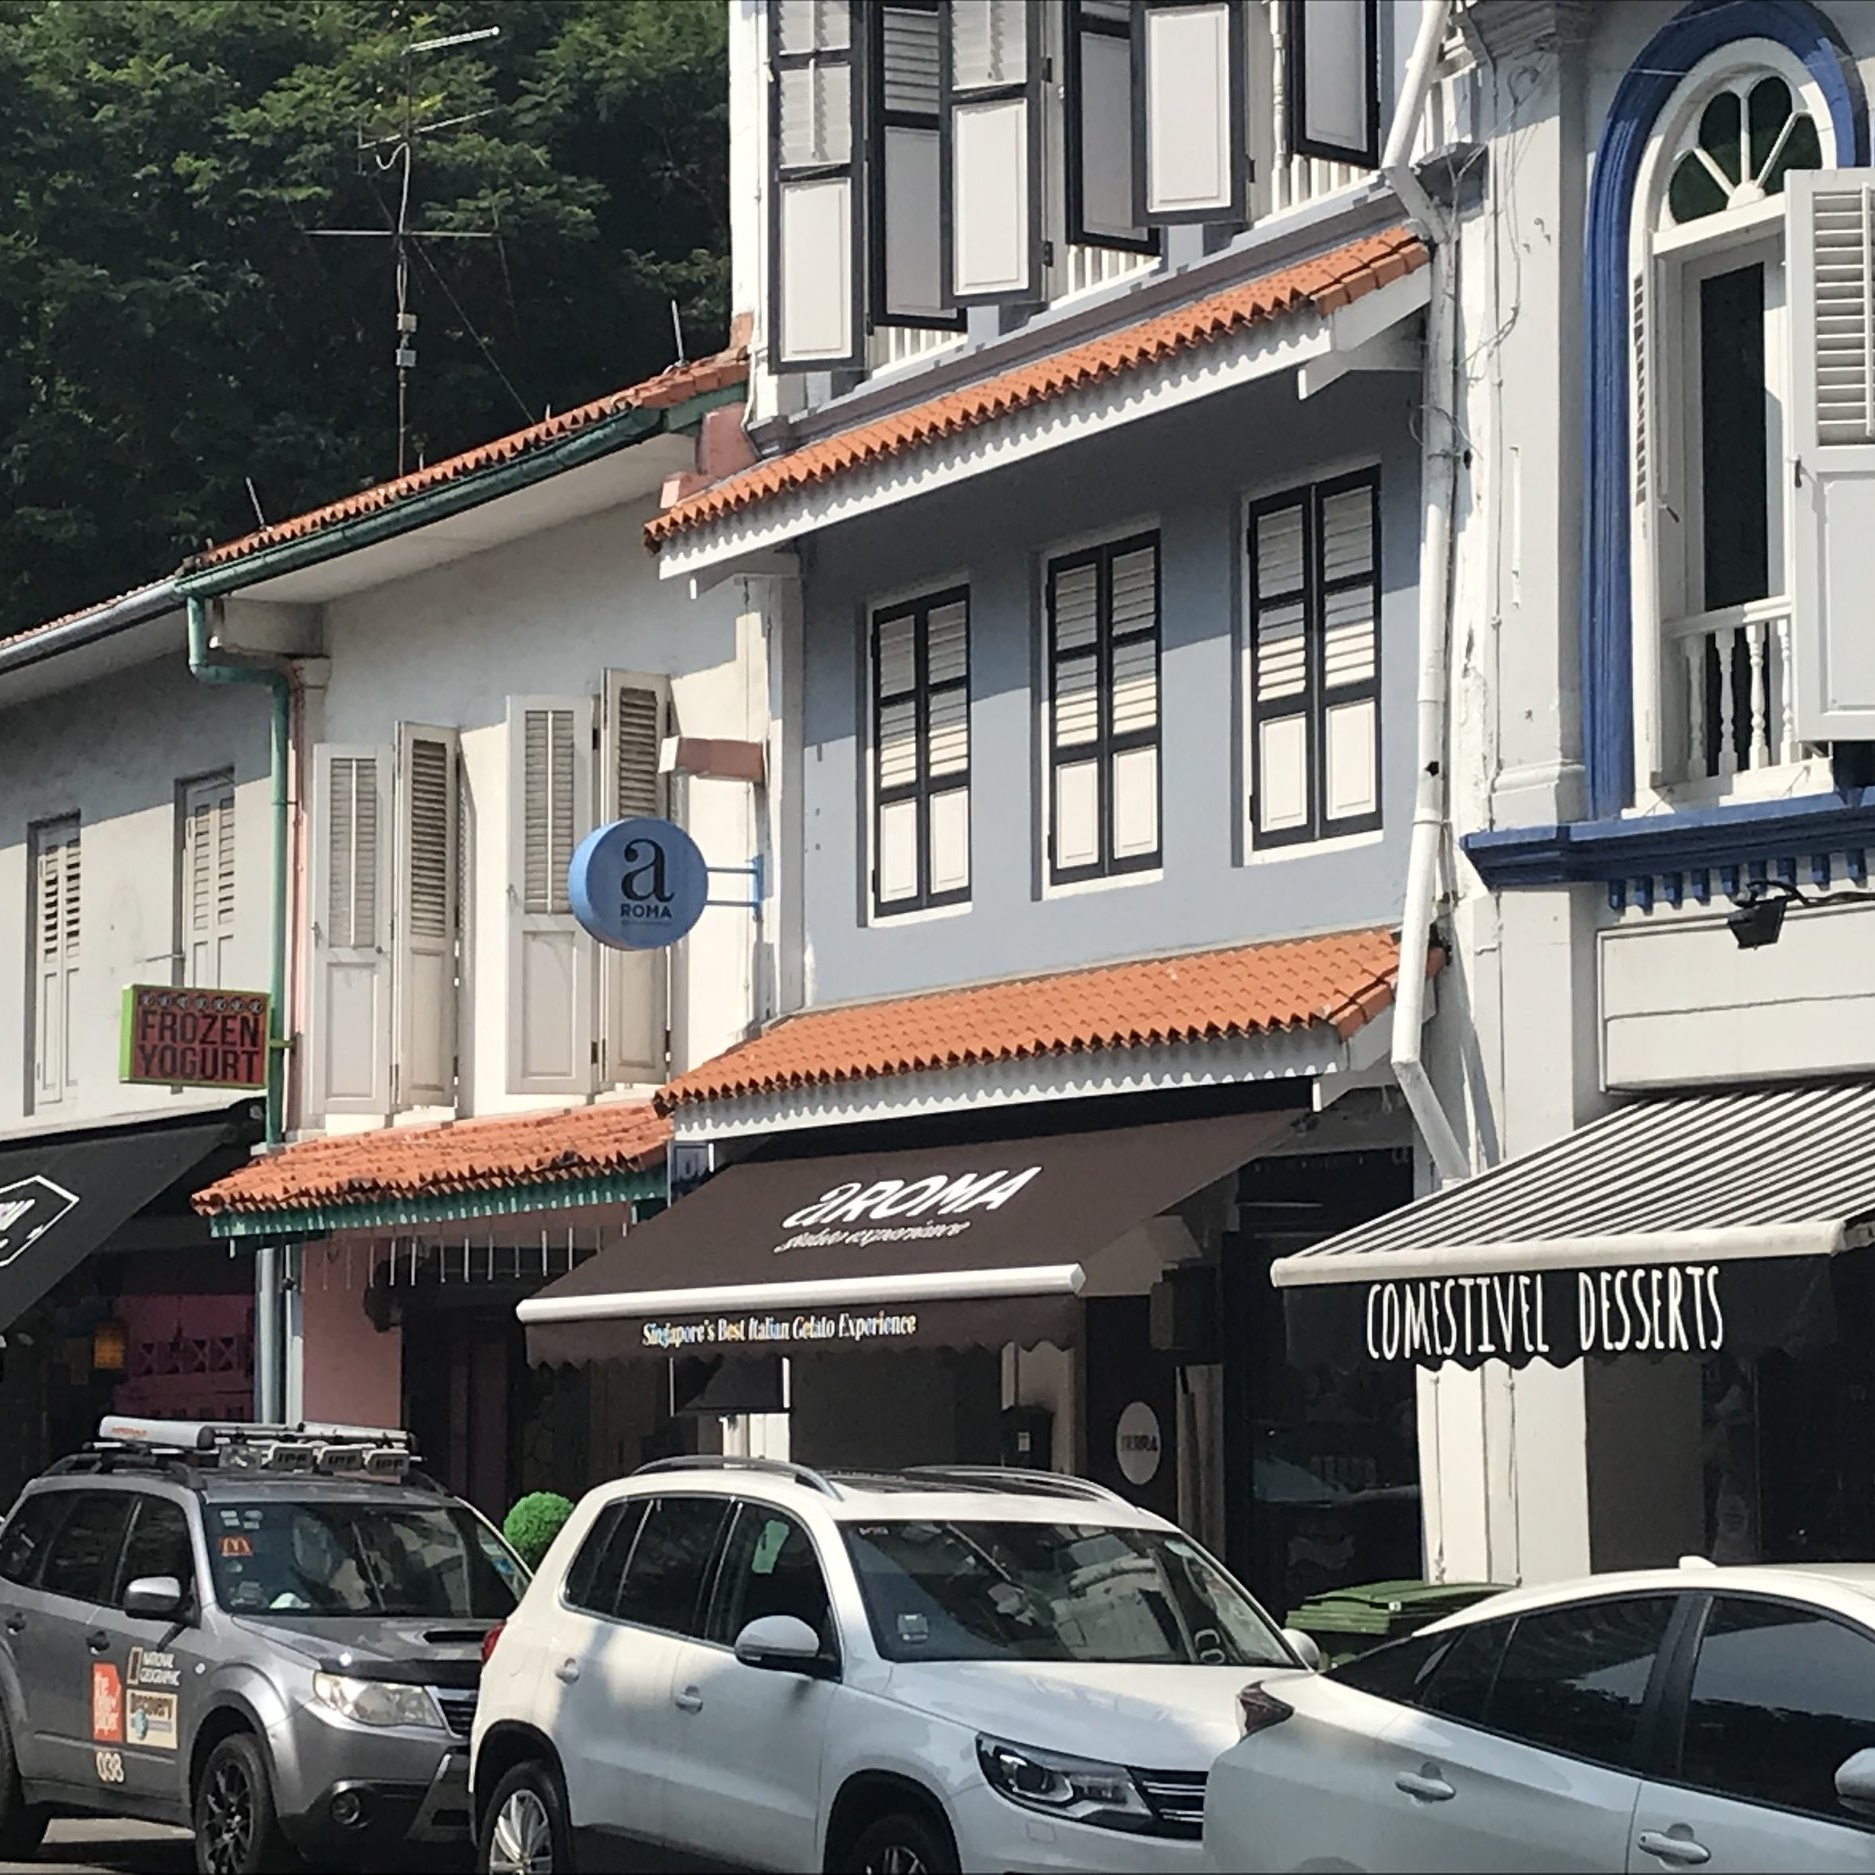 Singapore shophouses by The Doubtful Traveller